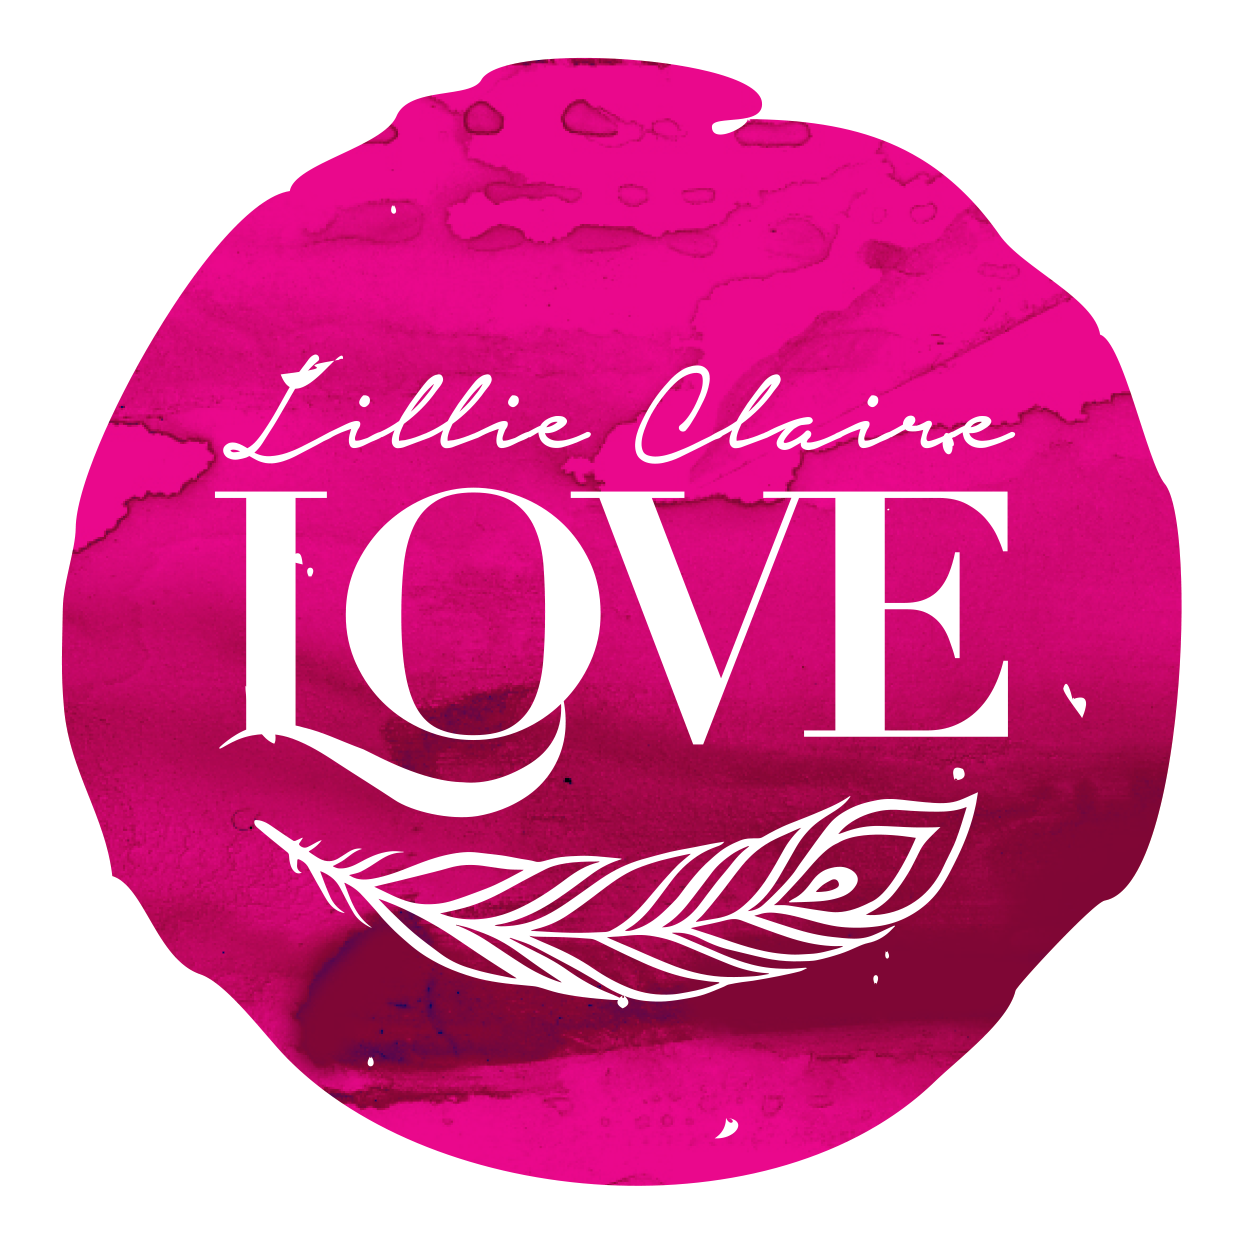 Lillie Claire Love